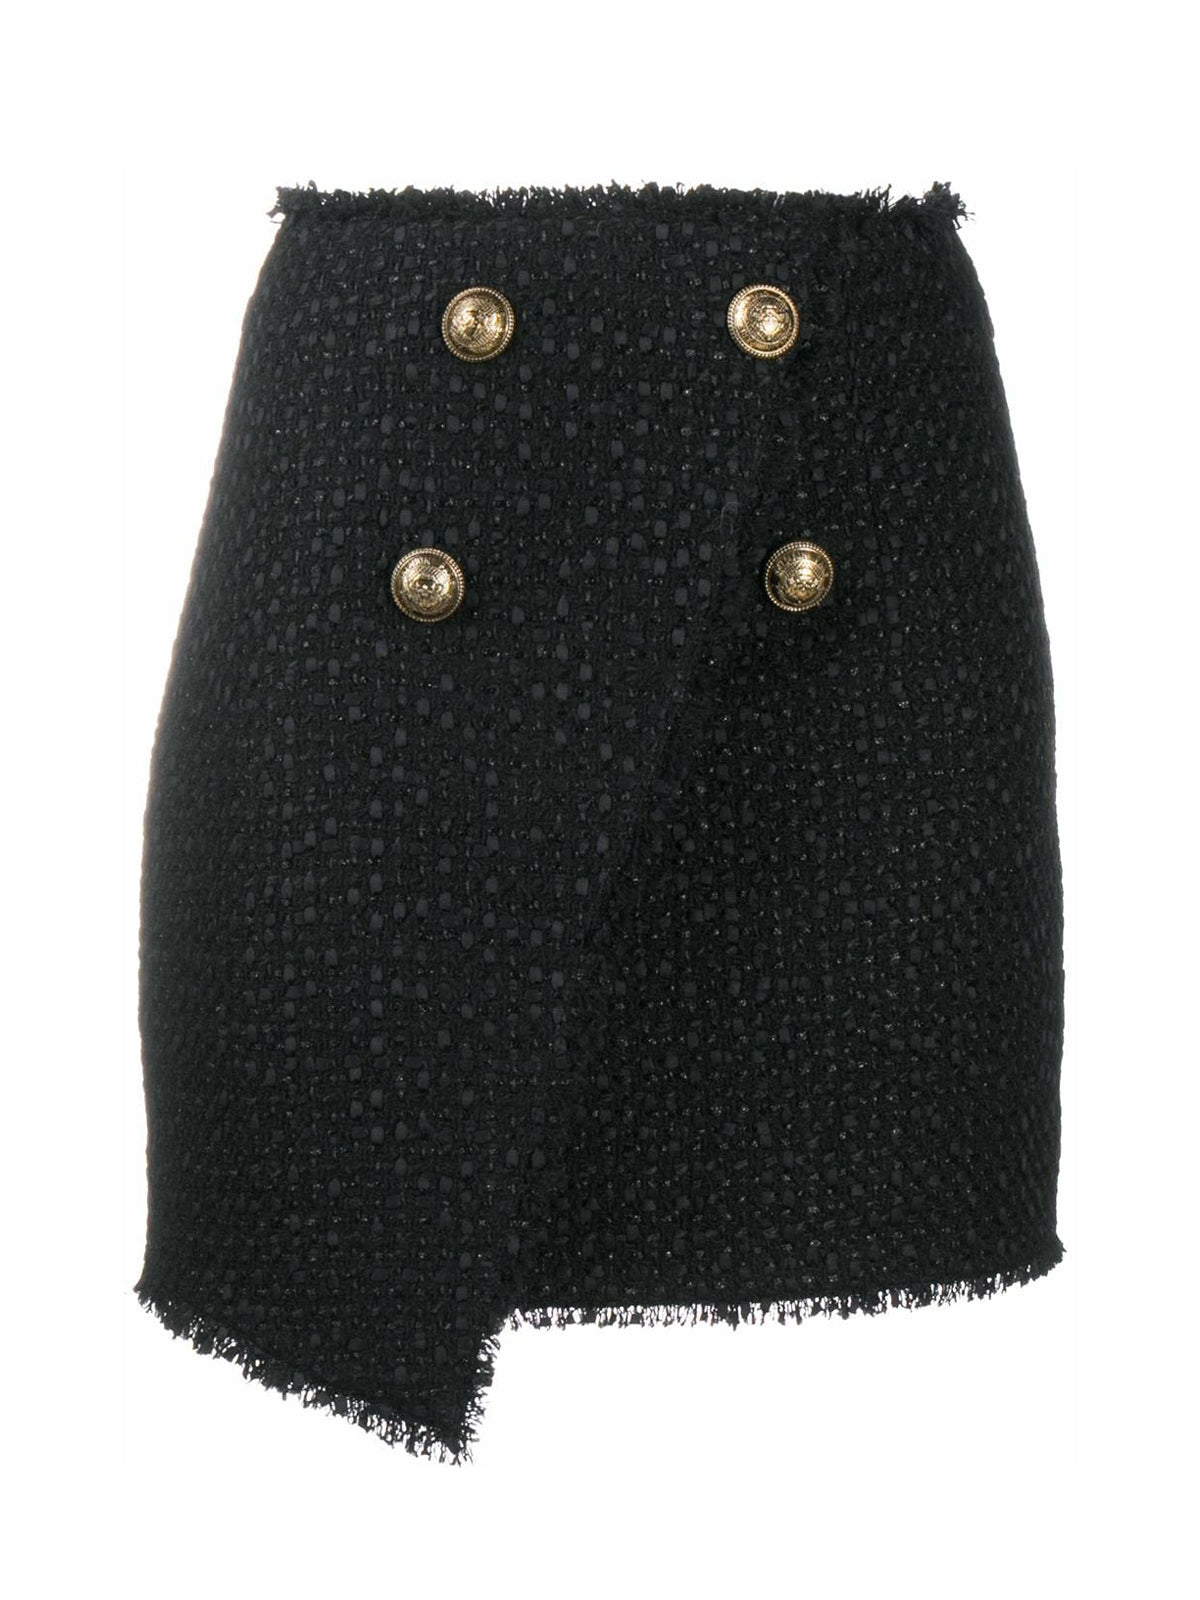 Miniskirt with double button